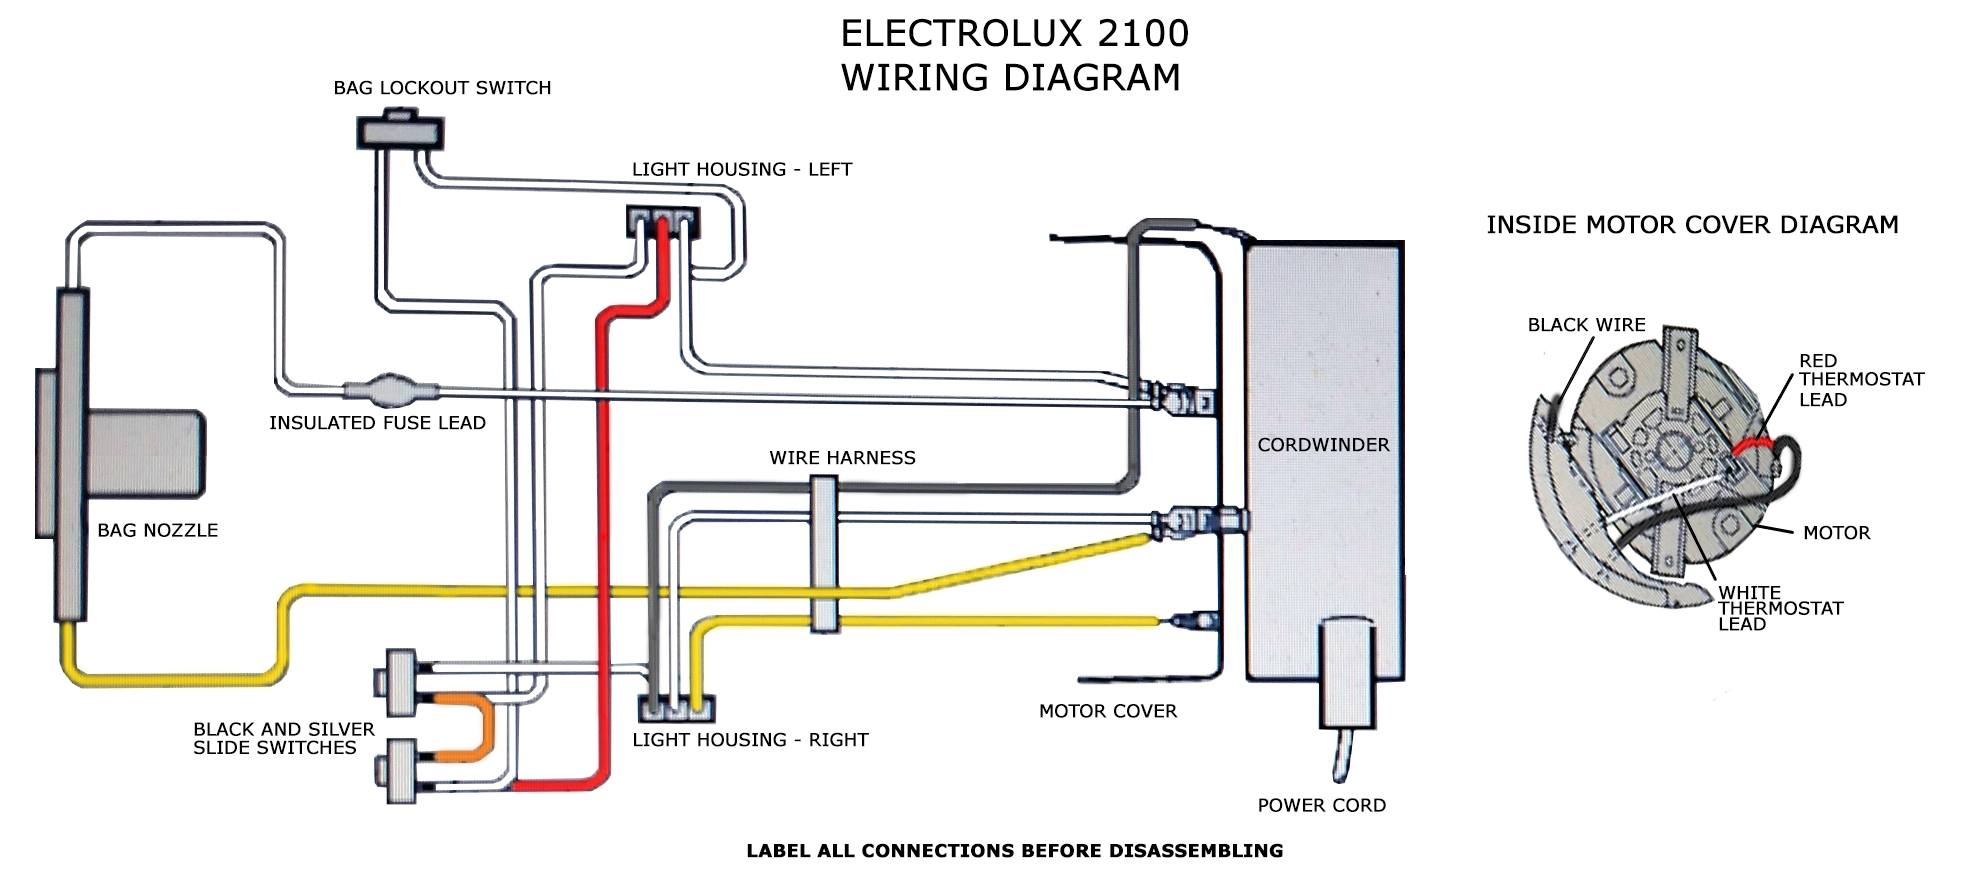 2100 wiring diagram jpg rh blog evacuumstore com rainbow vacuum cleaner wiring diagram henry vacuum cleaner wiring diagram